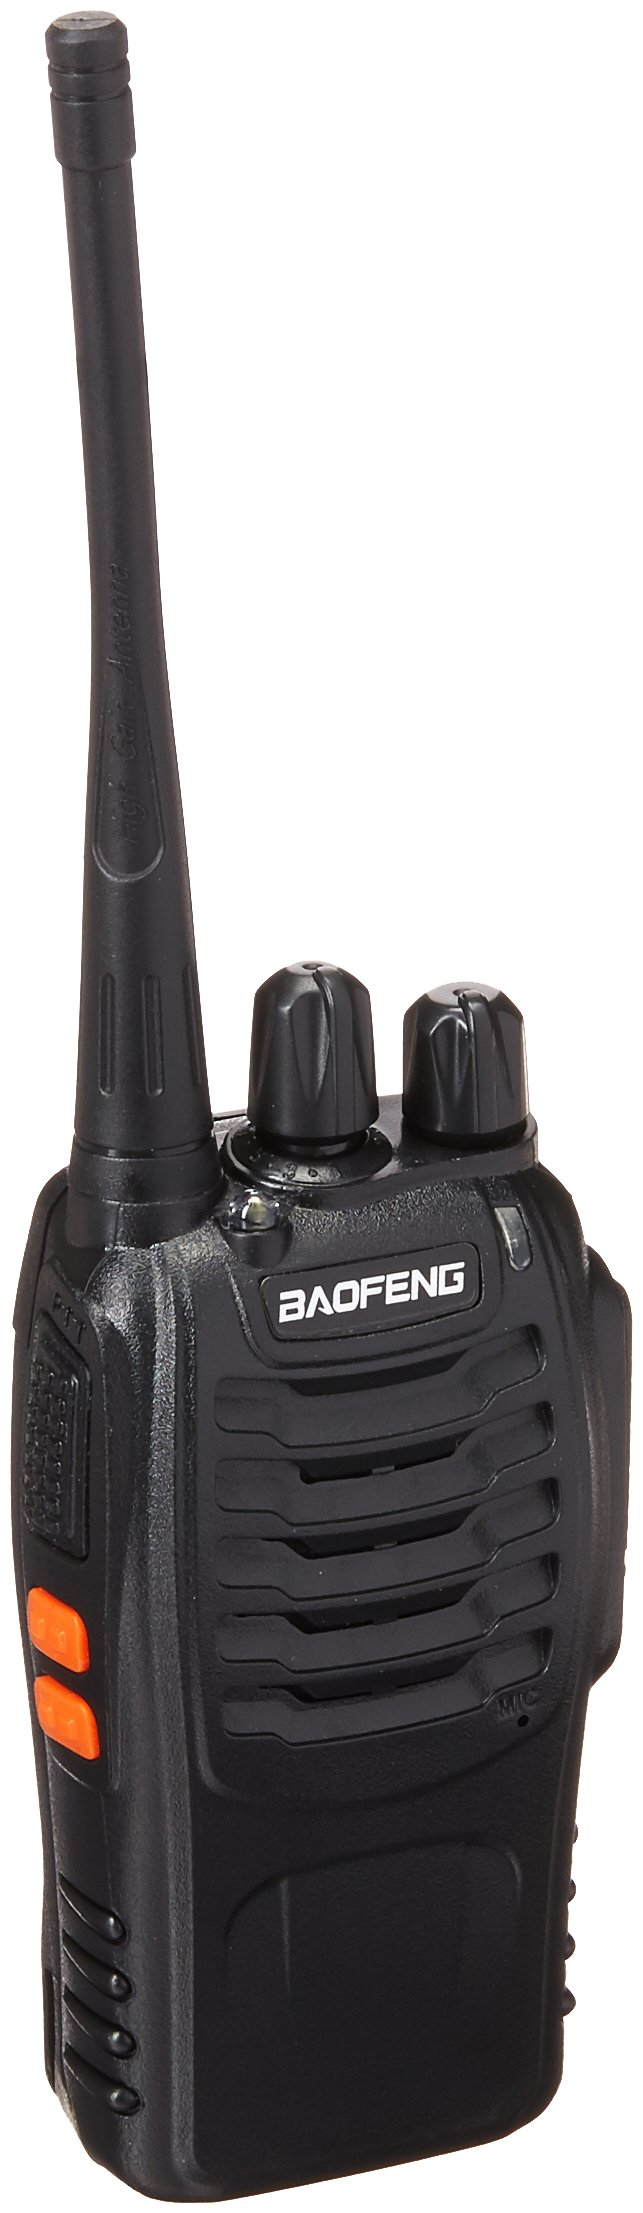 BaoFeng BF-888S Two Way Radio with Built in LED Flashlight (Pack of 4) + USB Programming Cable (1PC)